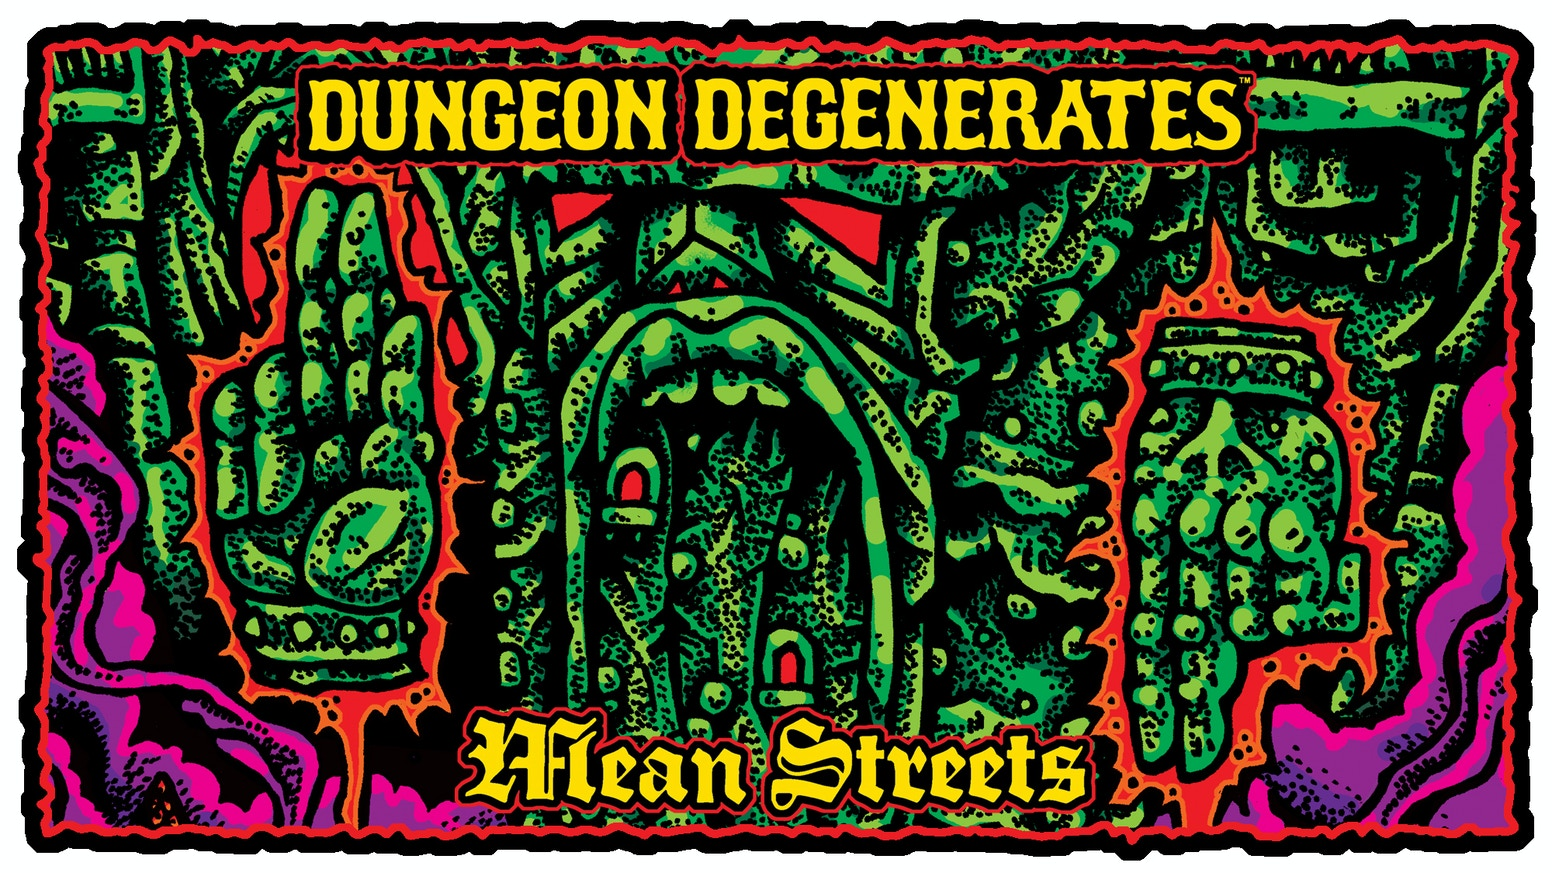 DUNGEON DEGENERATES: MEAN STREETS EXPANSION BOX is the top crowdfunding project launched today. DUNGEON DEGENERATES: MEAN STREETS EXPANSION BOX raised over $48306 from 841 backers. Other top projects include Cardcaptor Keys enamel pins collection, Azusa & Riiyuukii Launches 2nd Photobook! Thank you ?, The Calm...